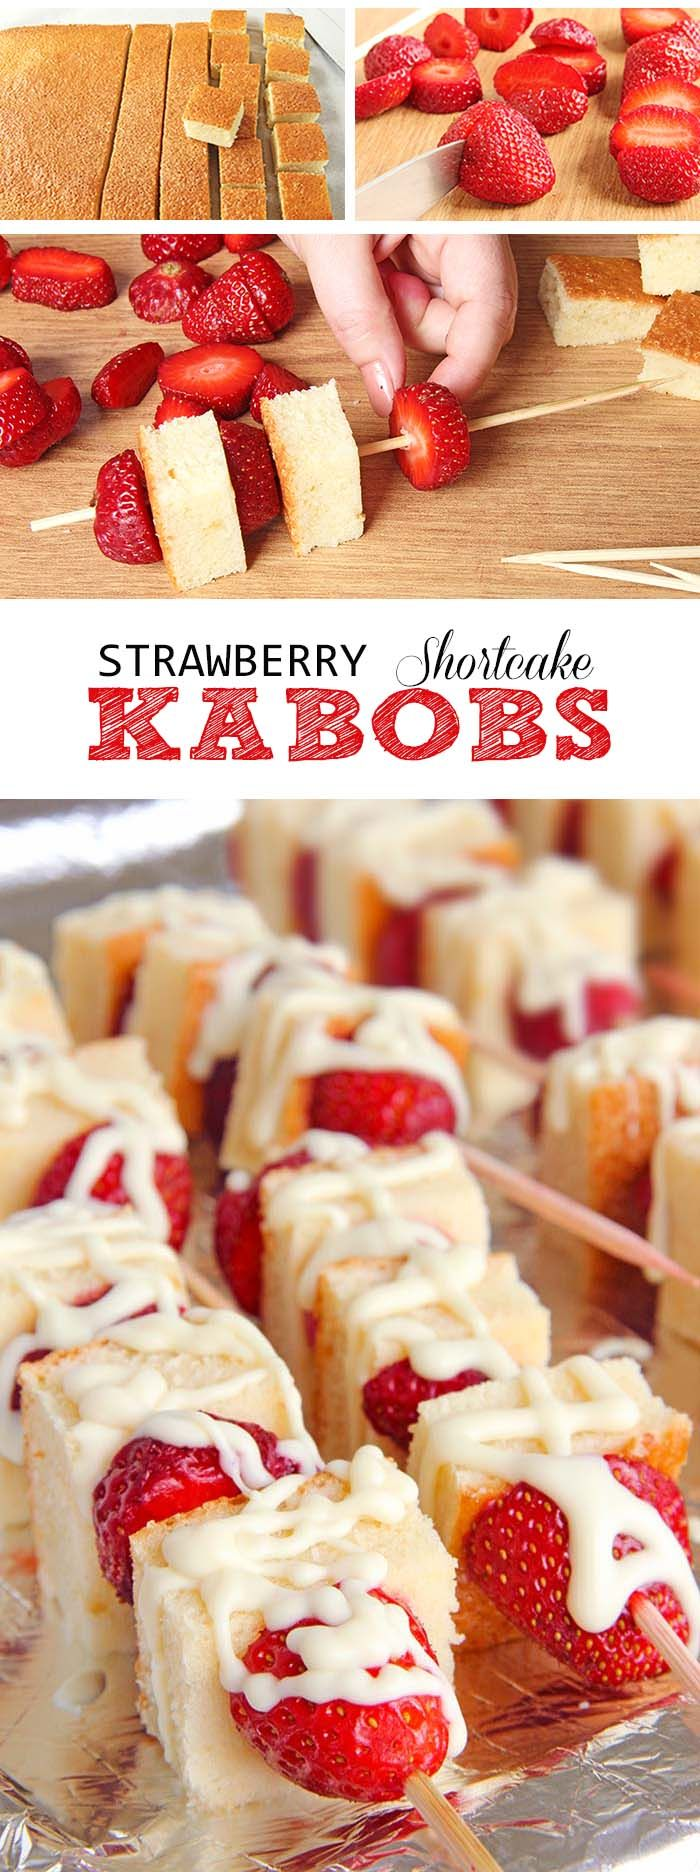 This strawberry Shortcake kabobs.  stick shortcake cubes and fruit on a skewer, drizzle with white chocolate.